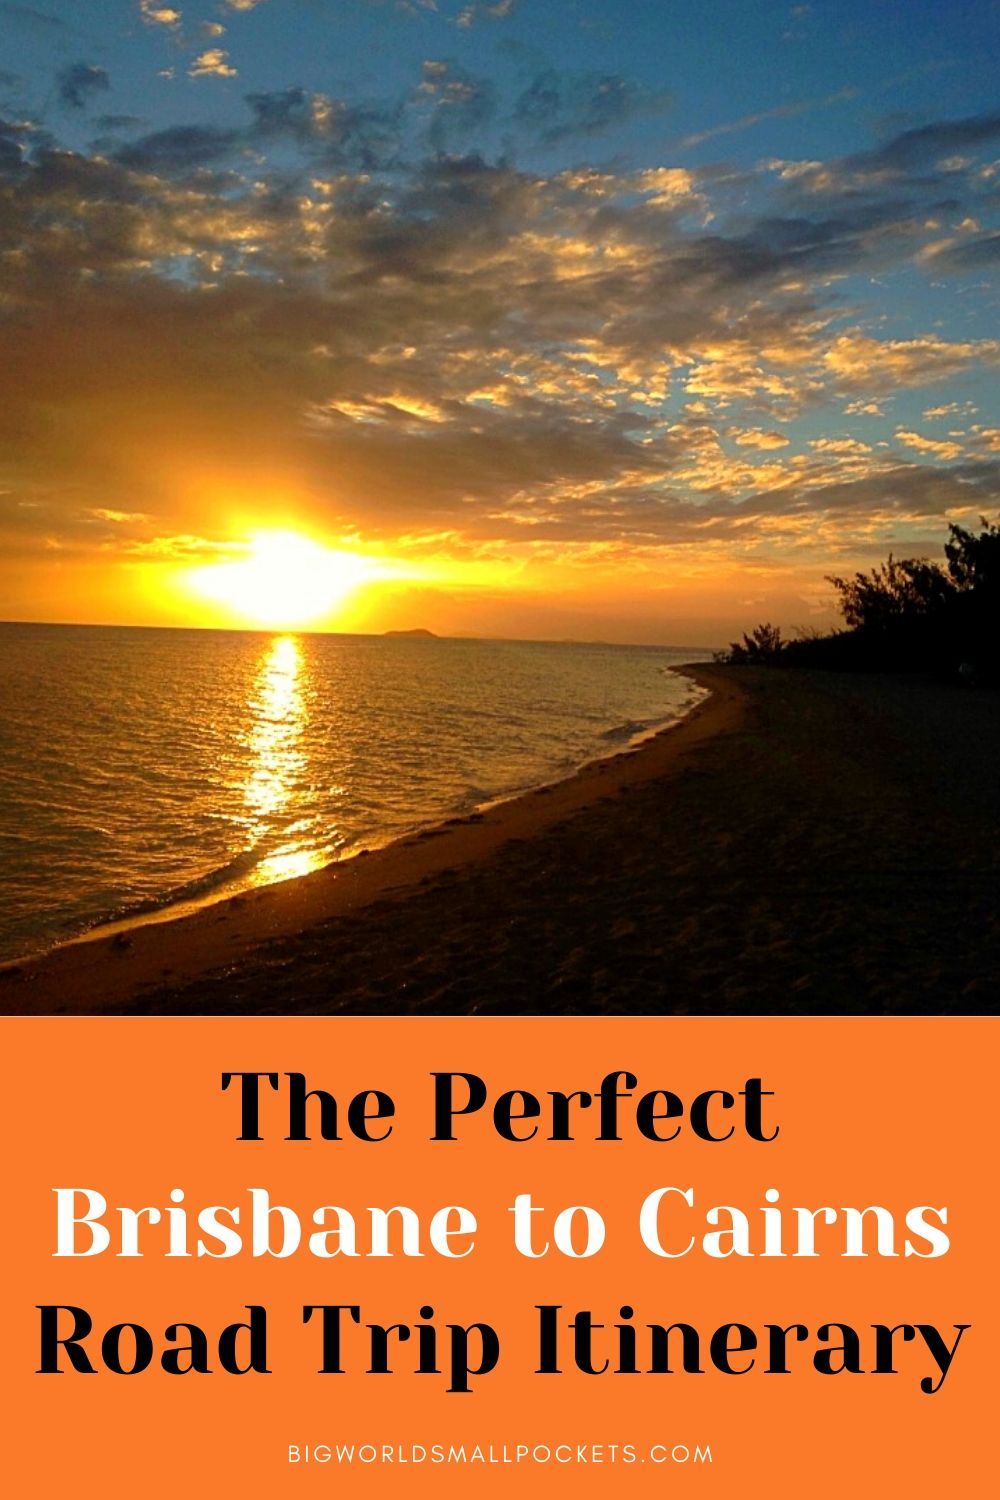 The Perfect Brisbane to Cairns Road Trip Itinerary